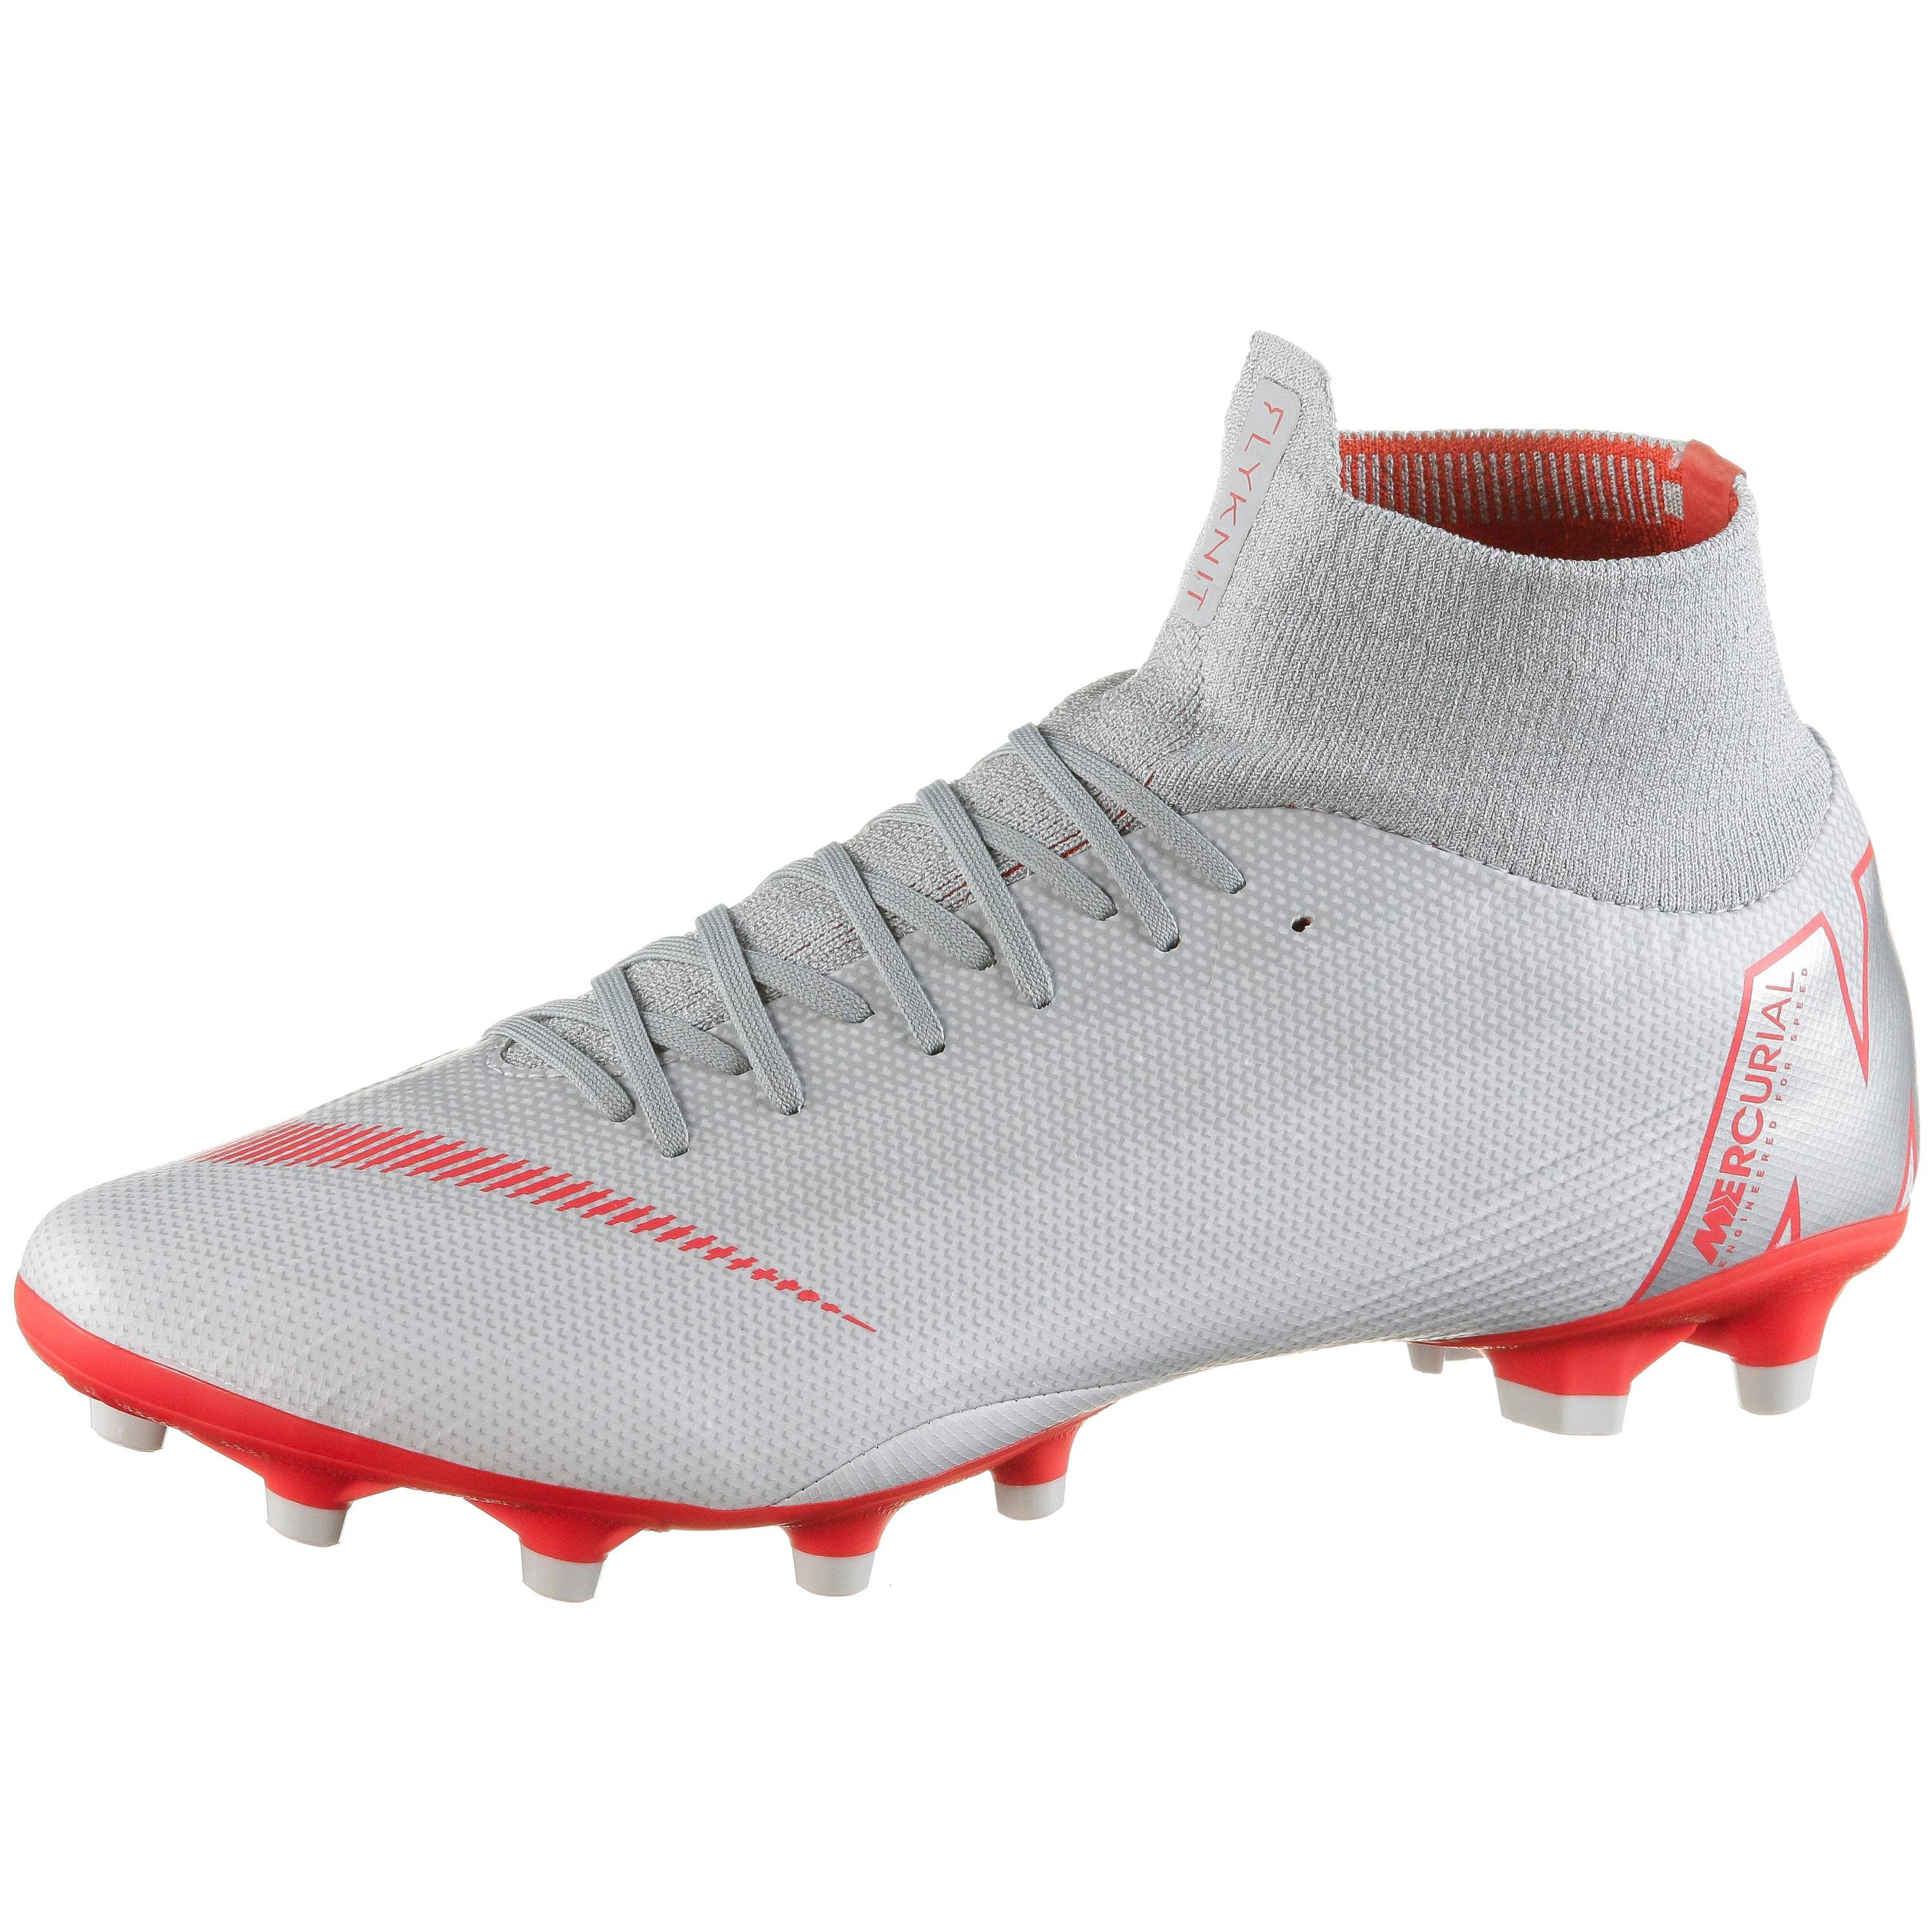 6 Pro pro Superfly Nike 060 Mercurial Silber Ag SqWRvEcPfg